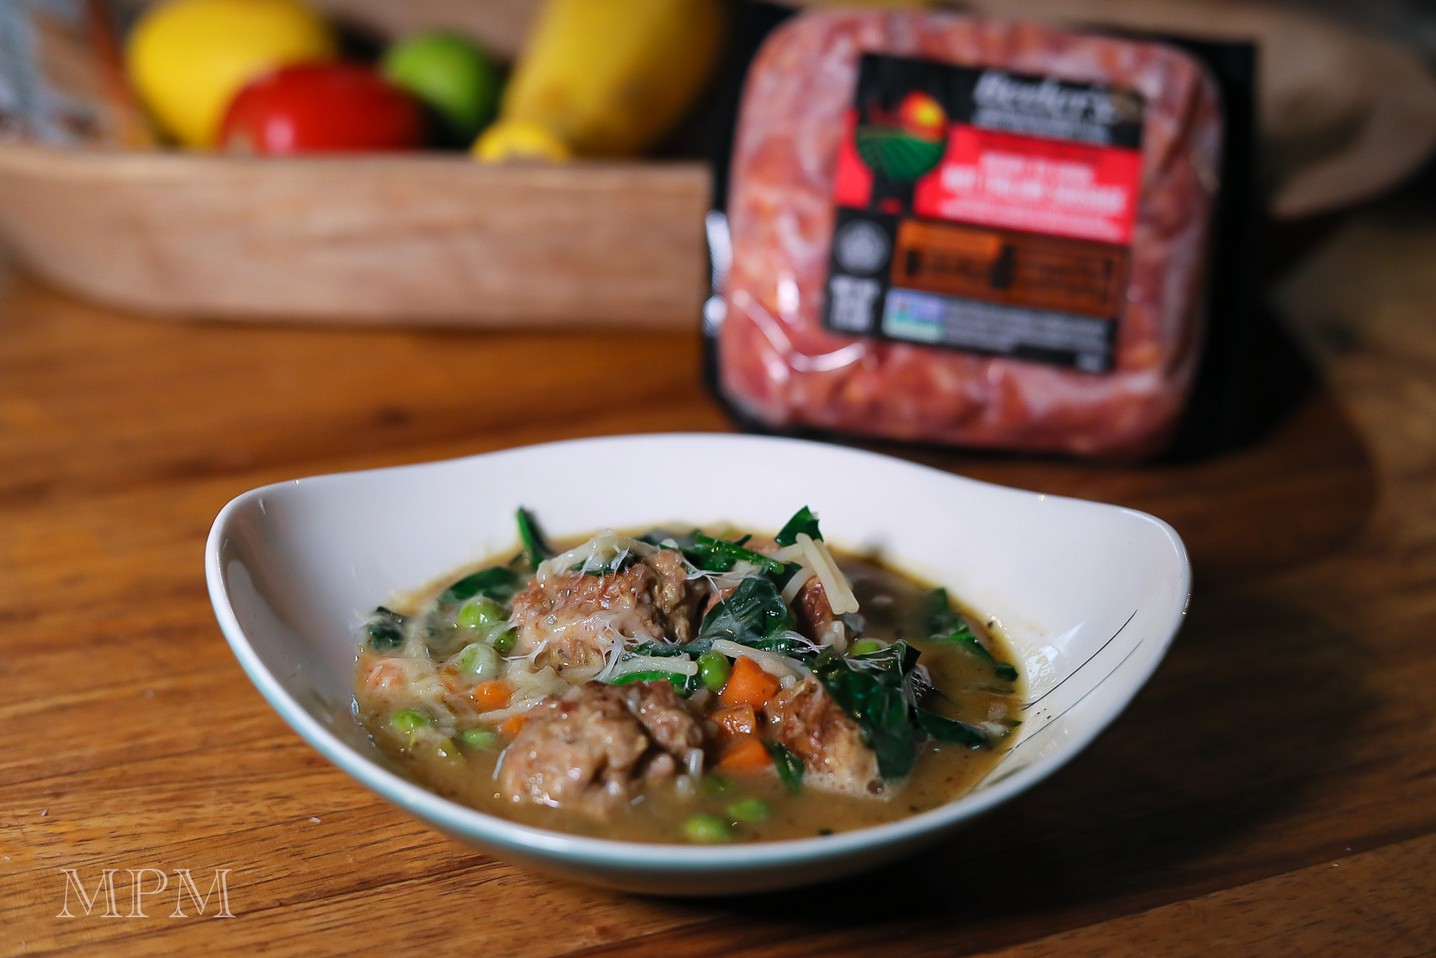 Italian Wedding Soup with Beeler's Hot Italian Sausage